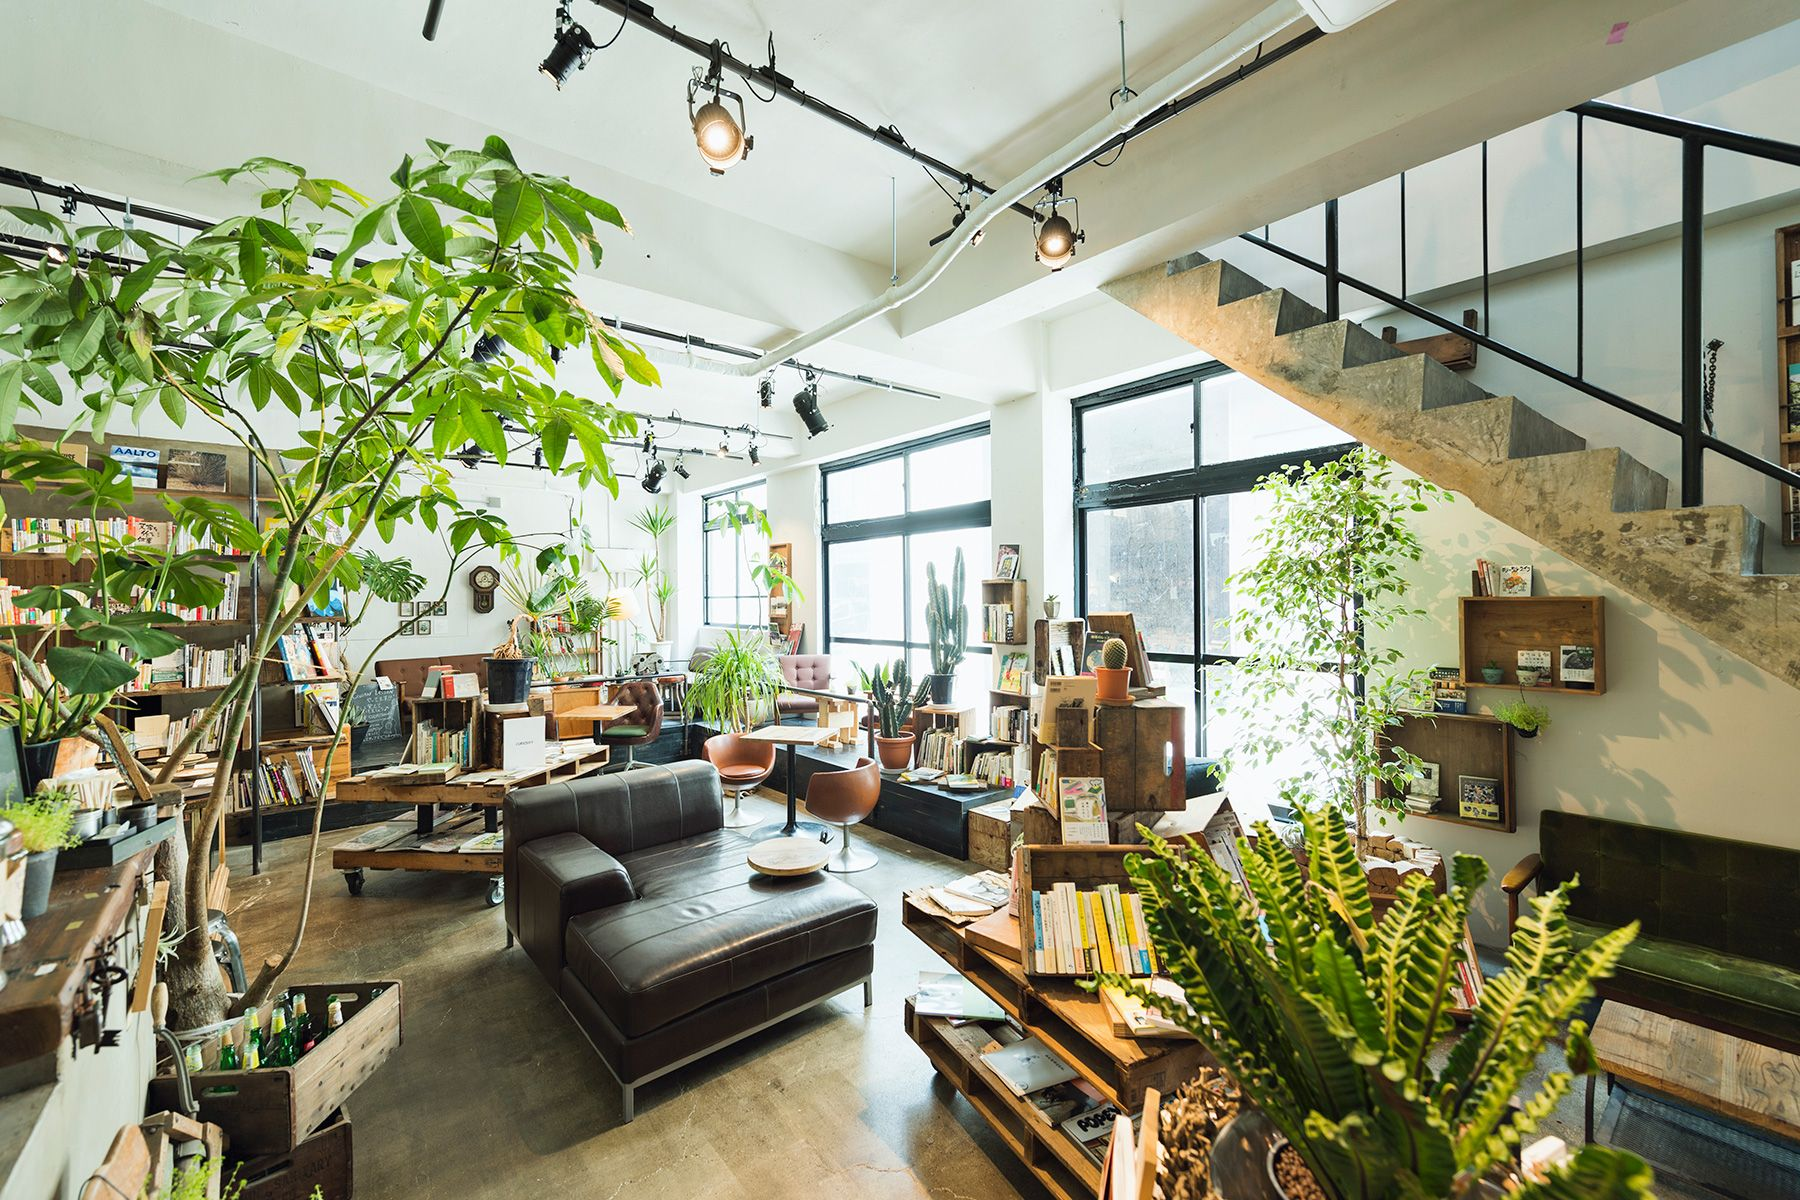 ROUTE COMMON BOOK CAFE  (ルートコモン ブックカフェ)入口側から店内